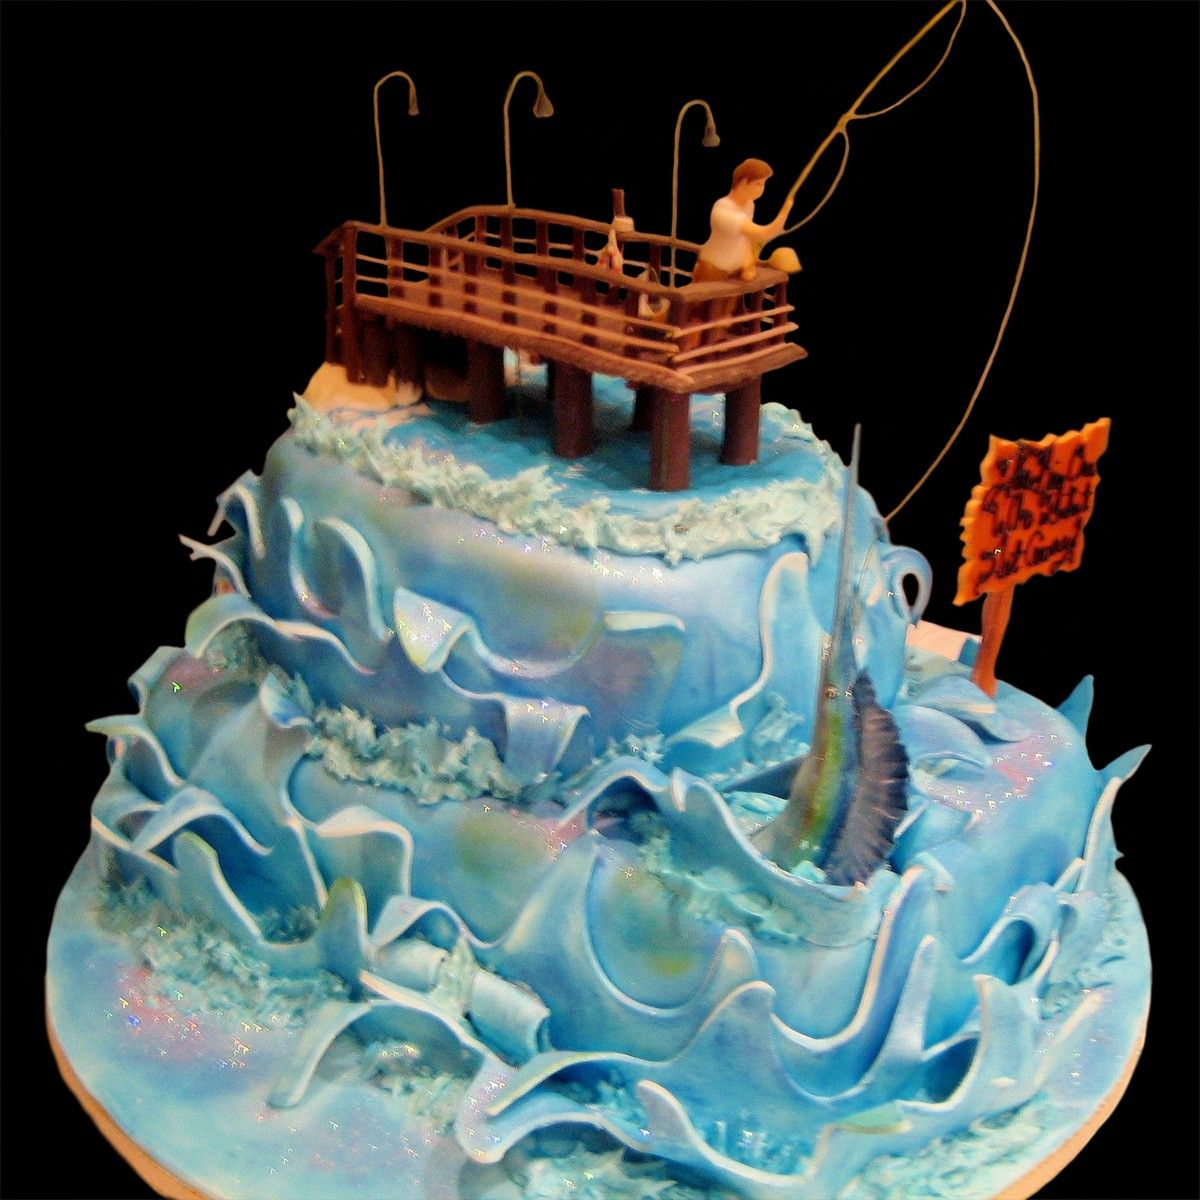 Fishing birthday cakes for men home fishing and pier for Fishing themed cakes